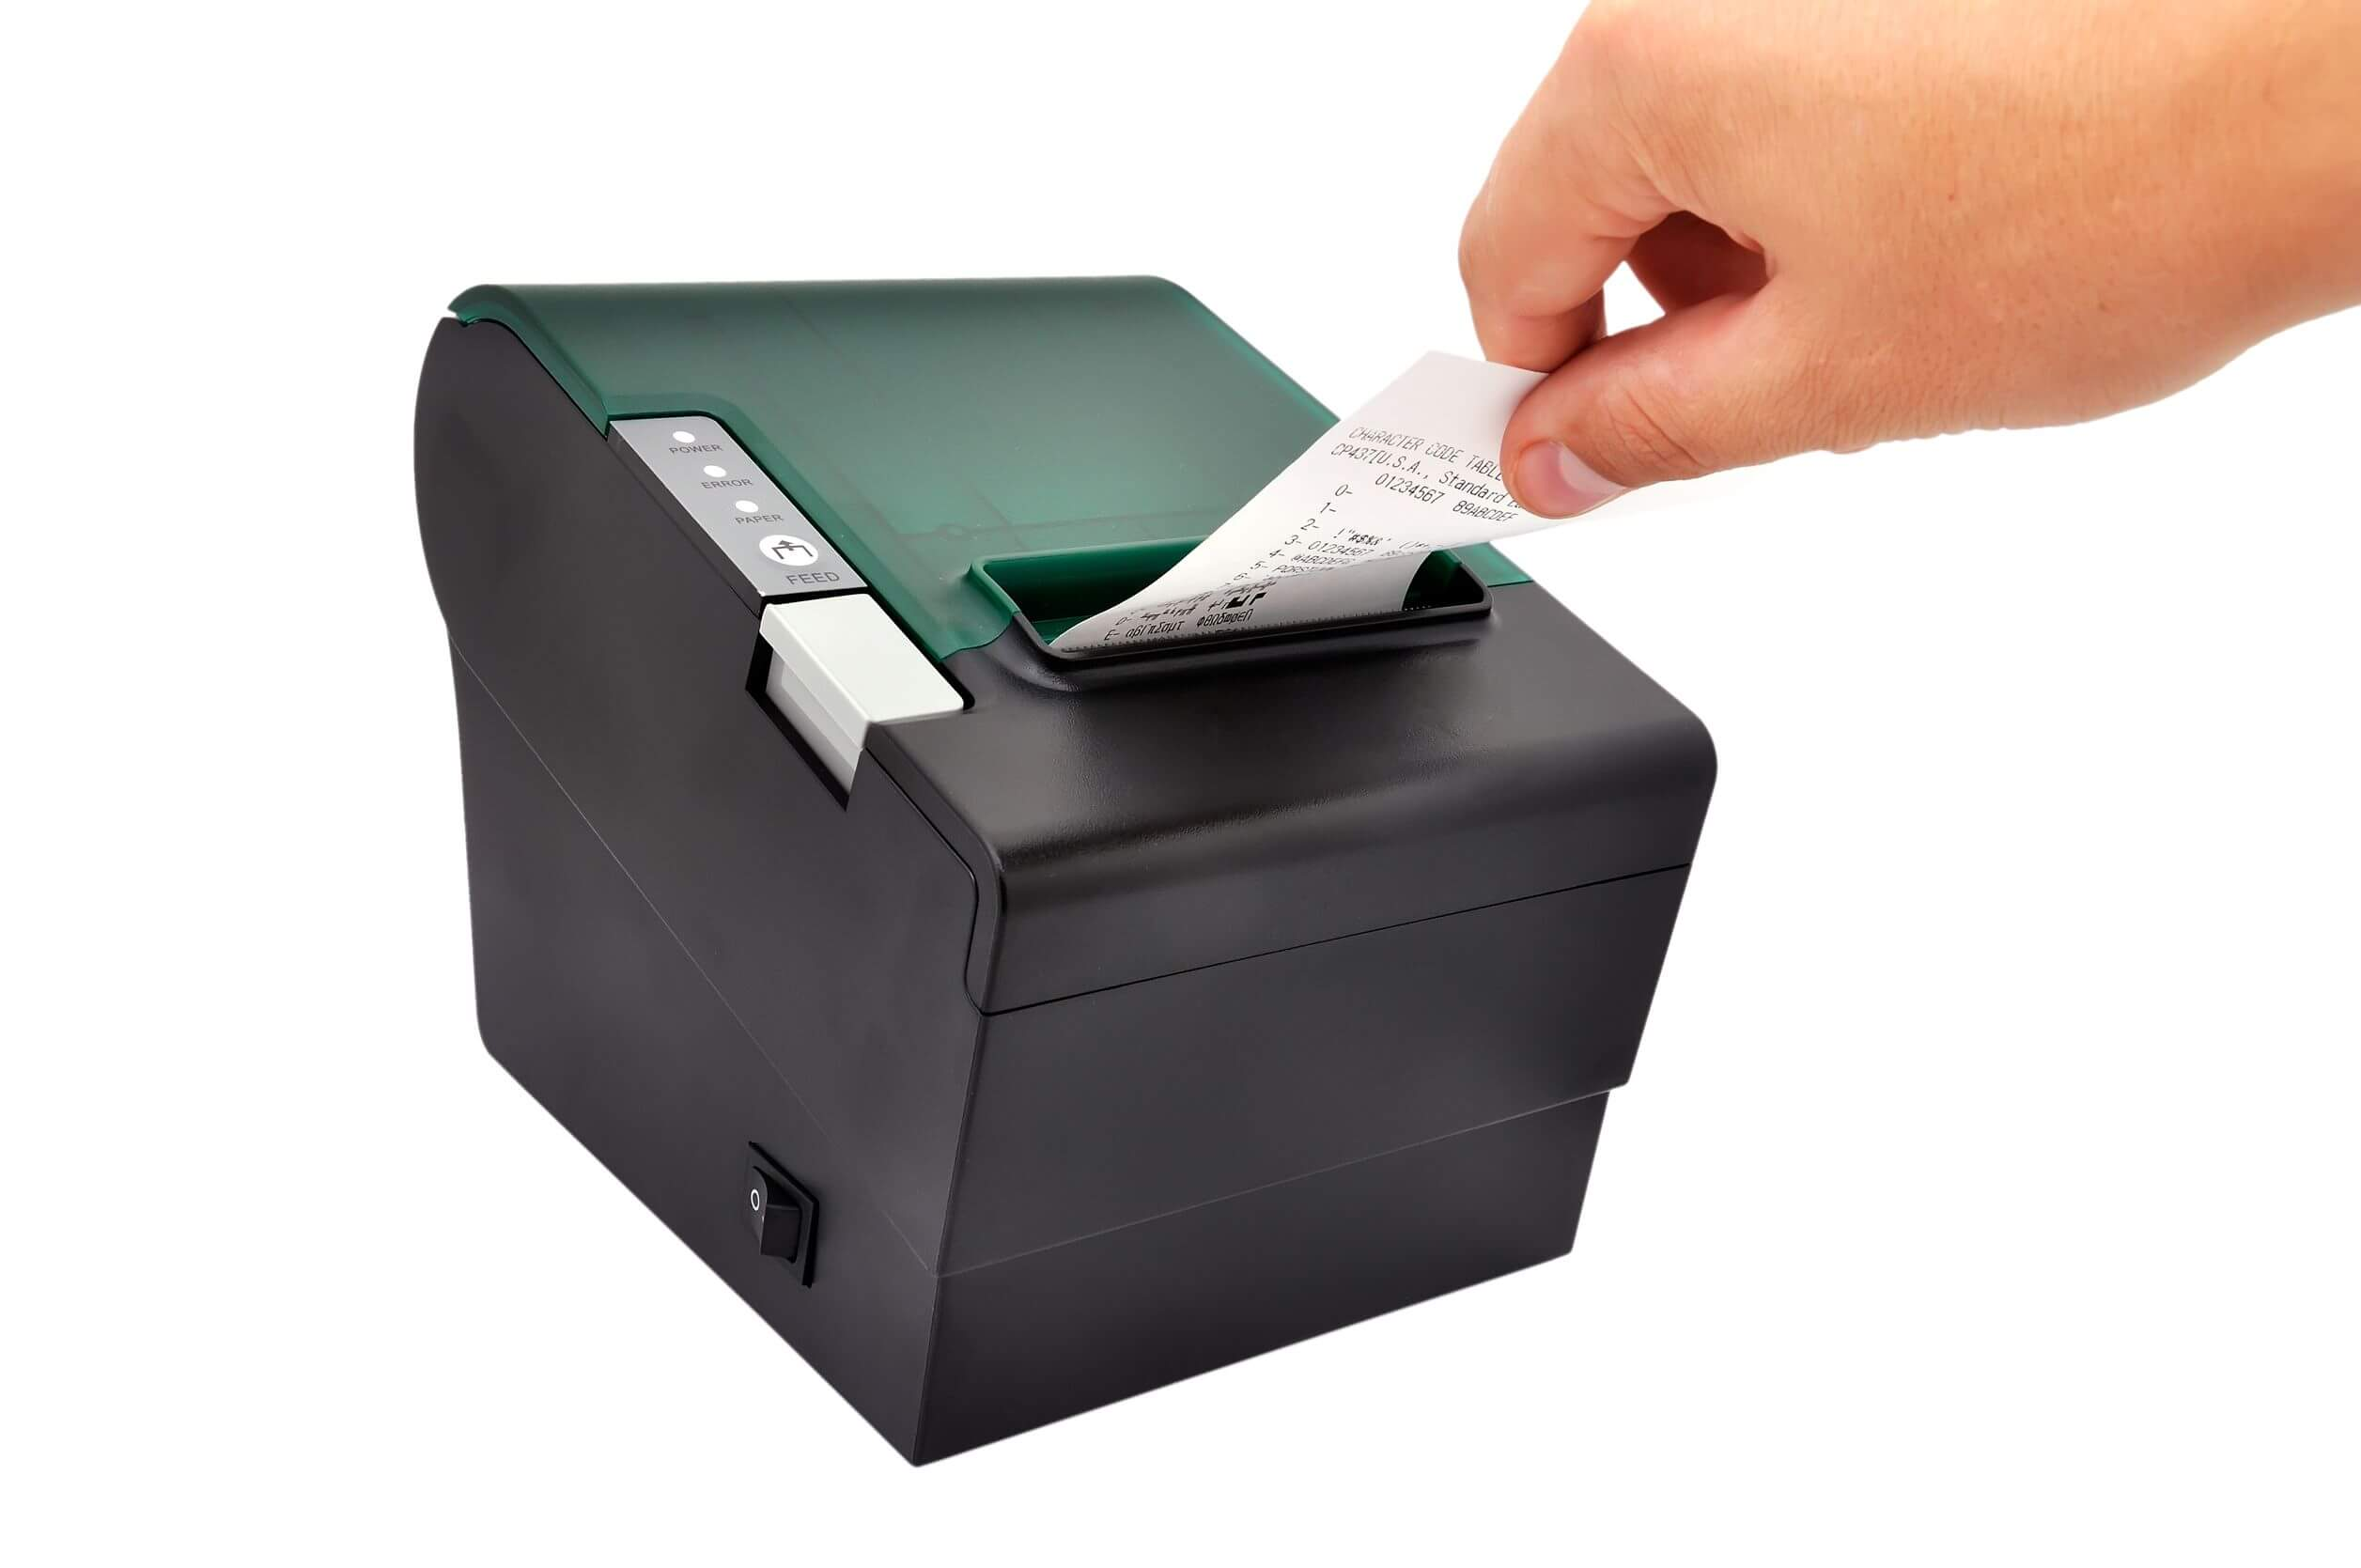 Are You Looking For A Thermal Printer Singapore? Do Not Forget To Weigh The Advantages And Disadvantages